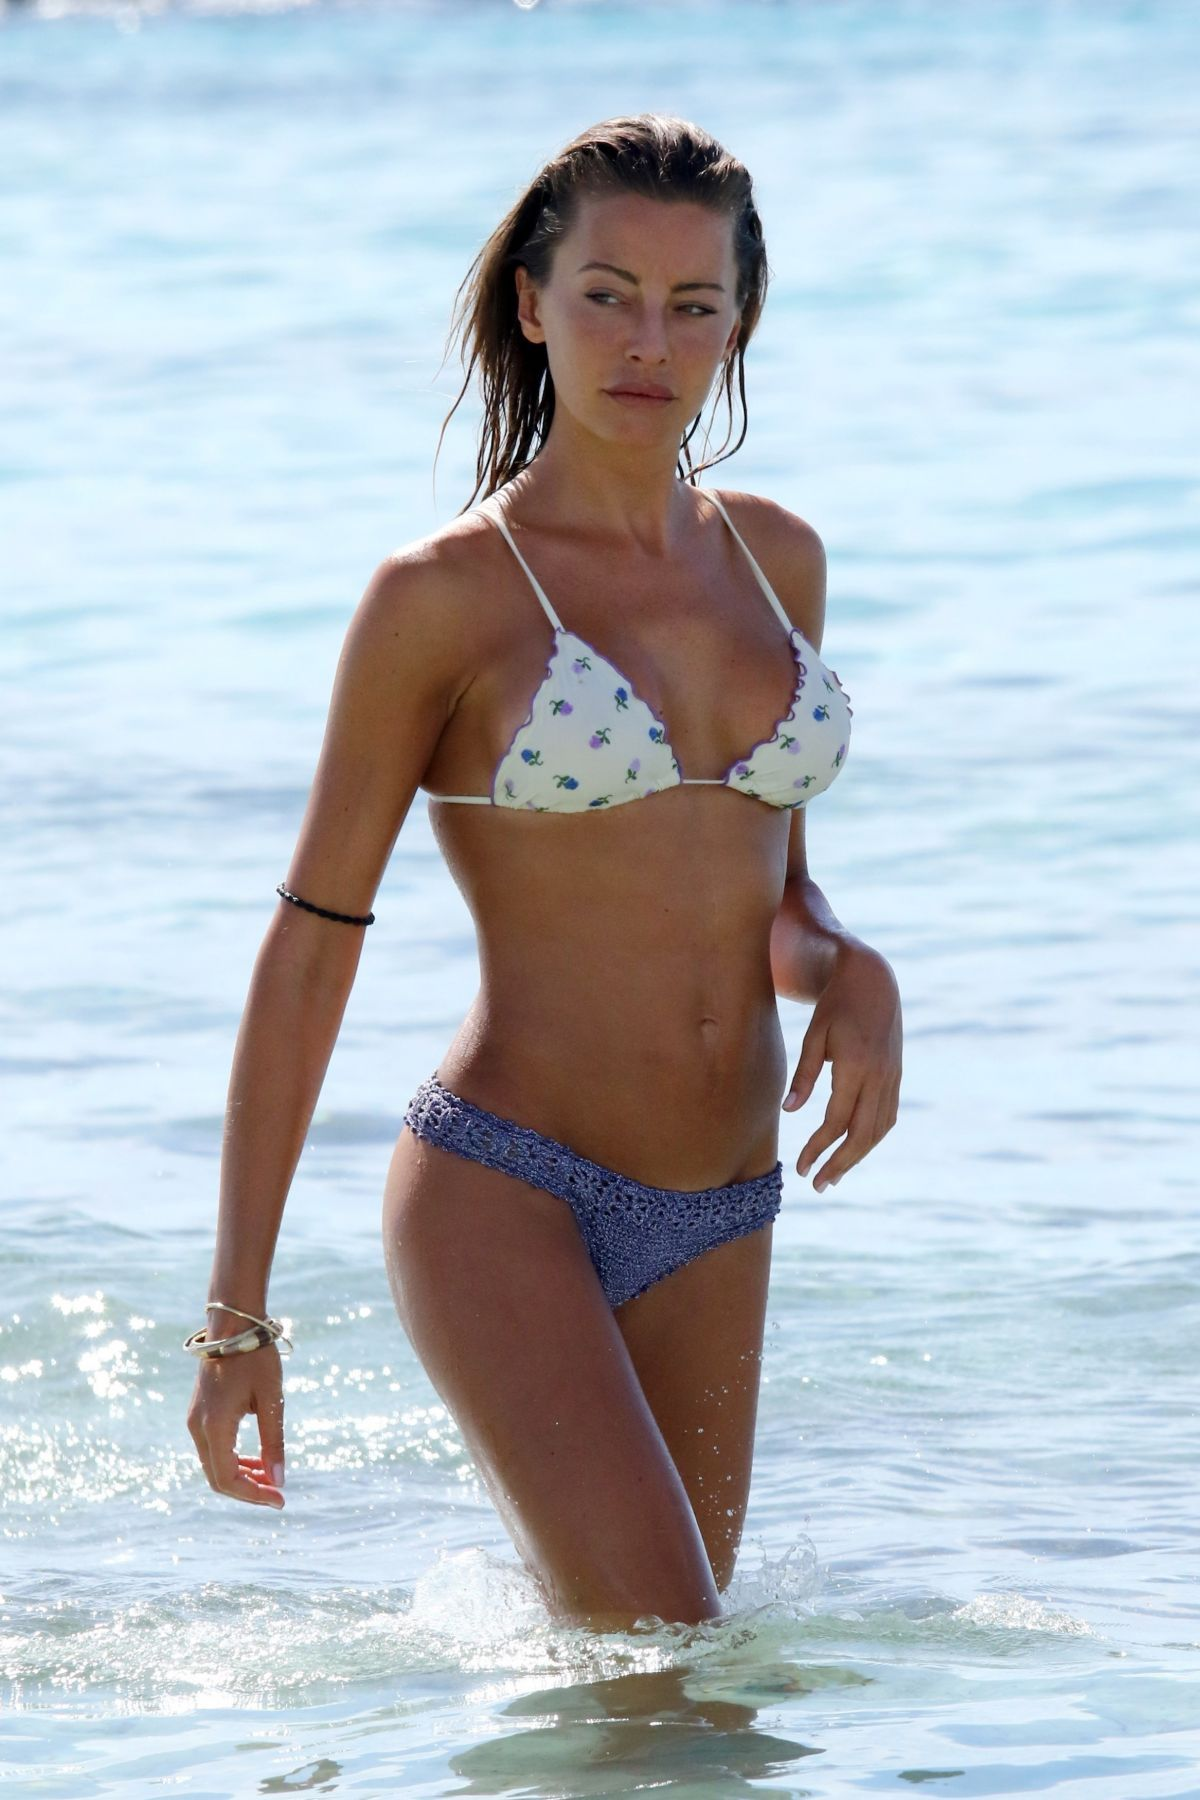 Alessia Tedeschi In Bikini at a beach in Formentera